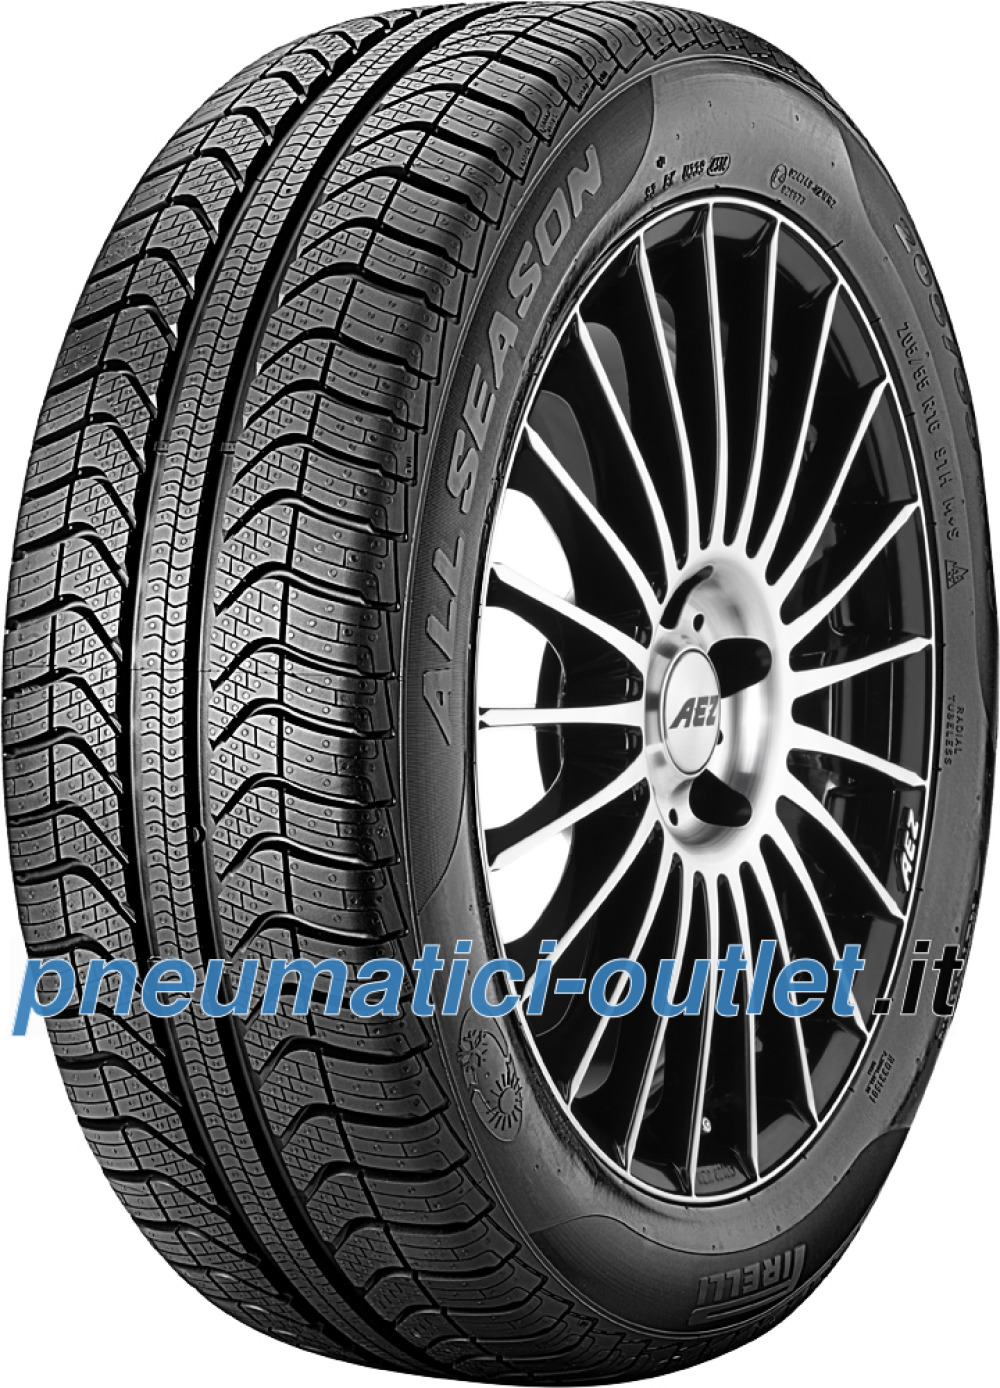 Pirelli Cinturato All Season ( 225/45 R17 94V XL , Seal Inside )